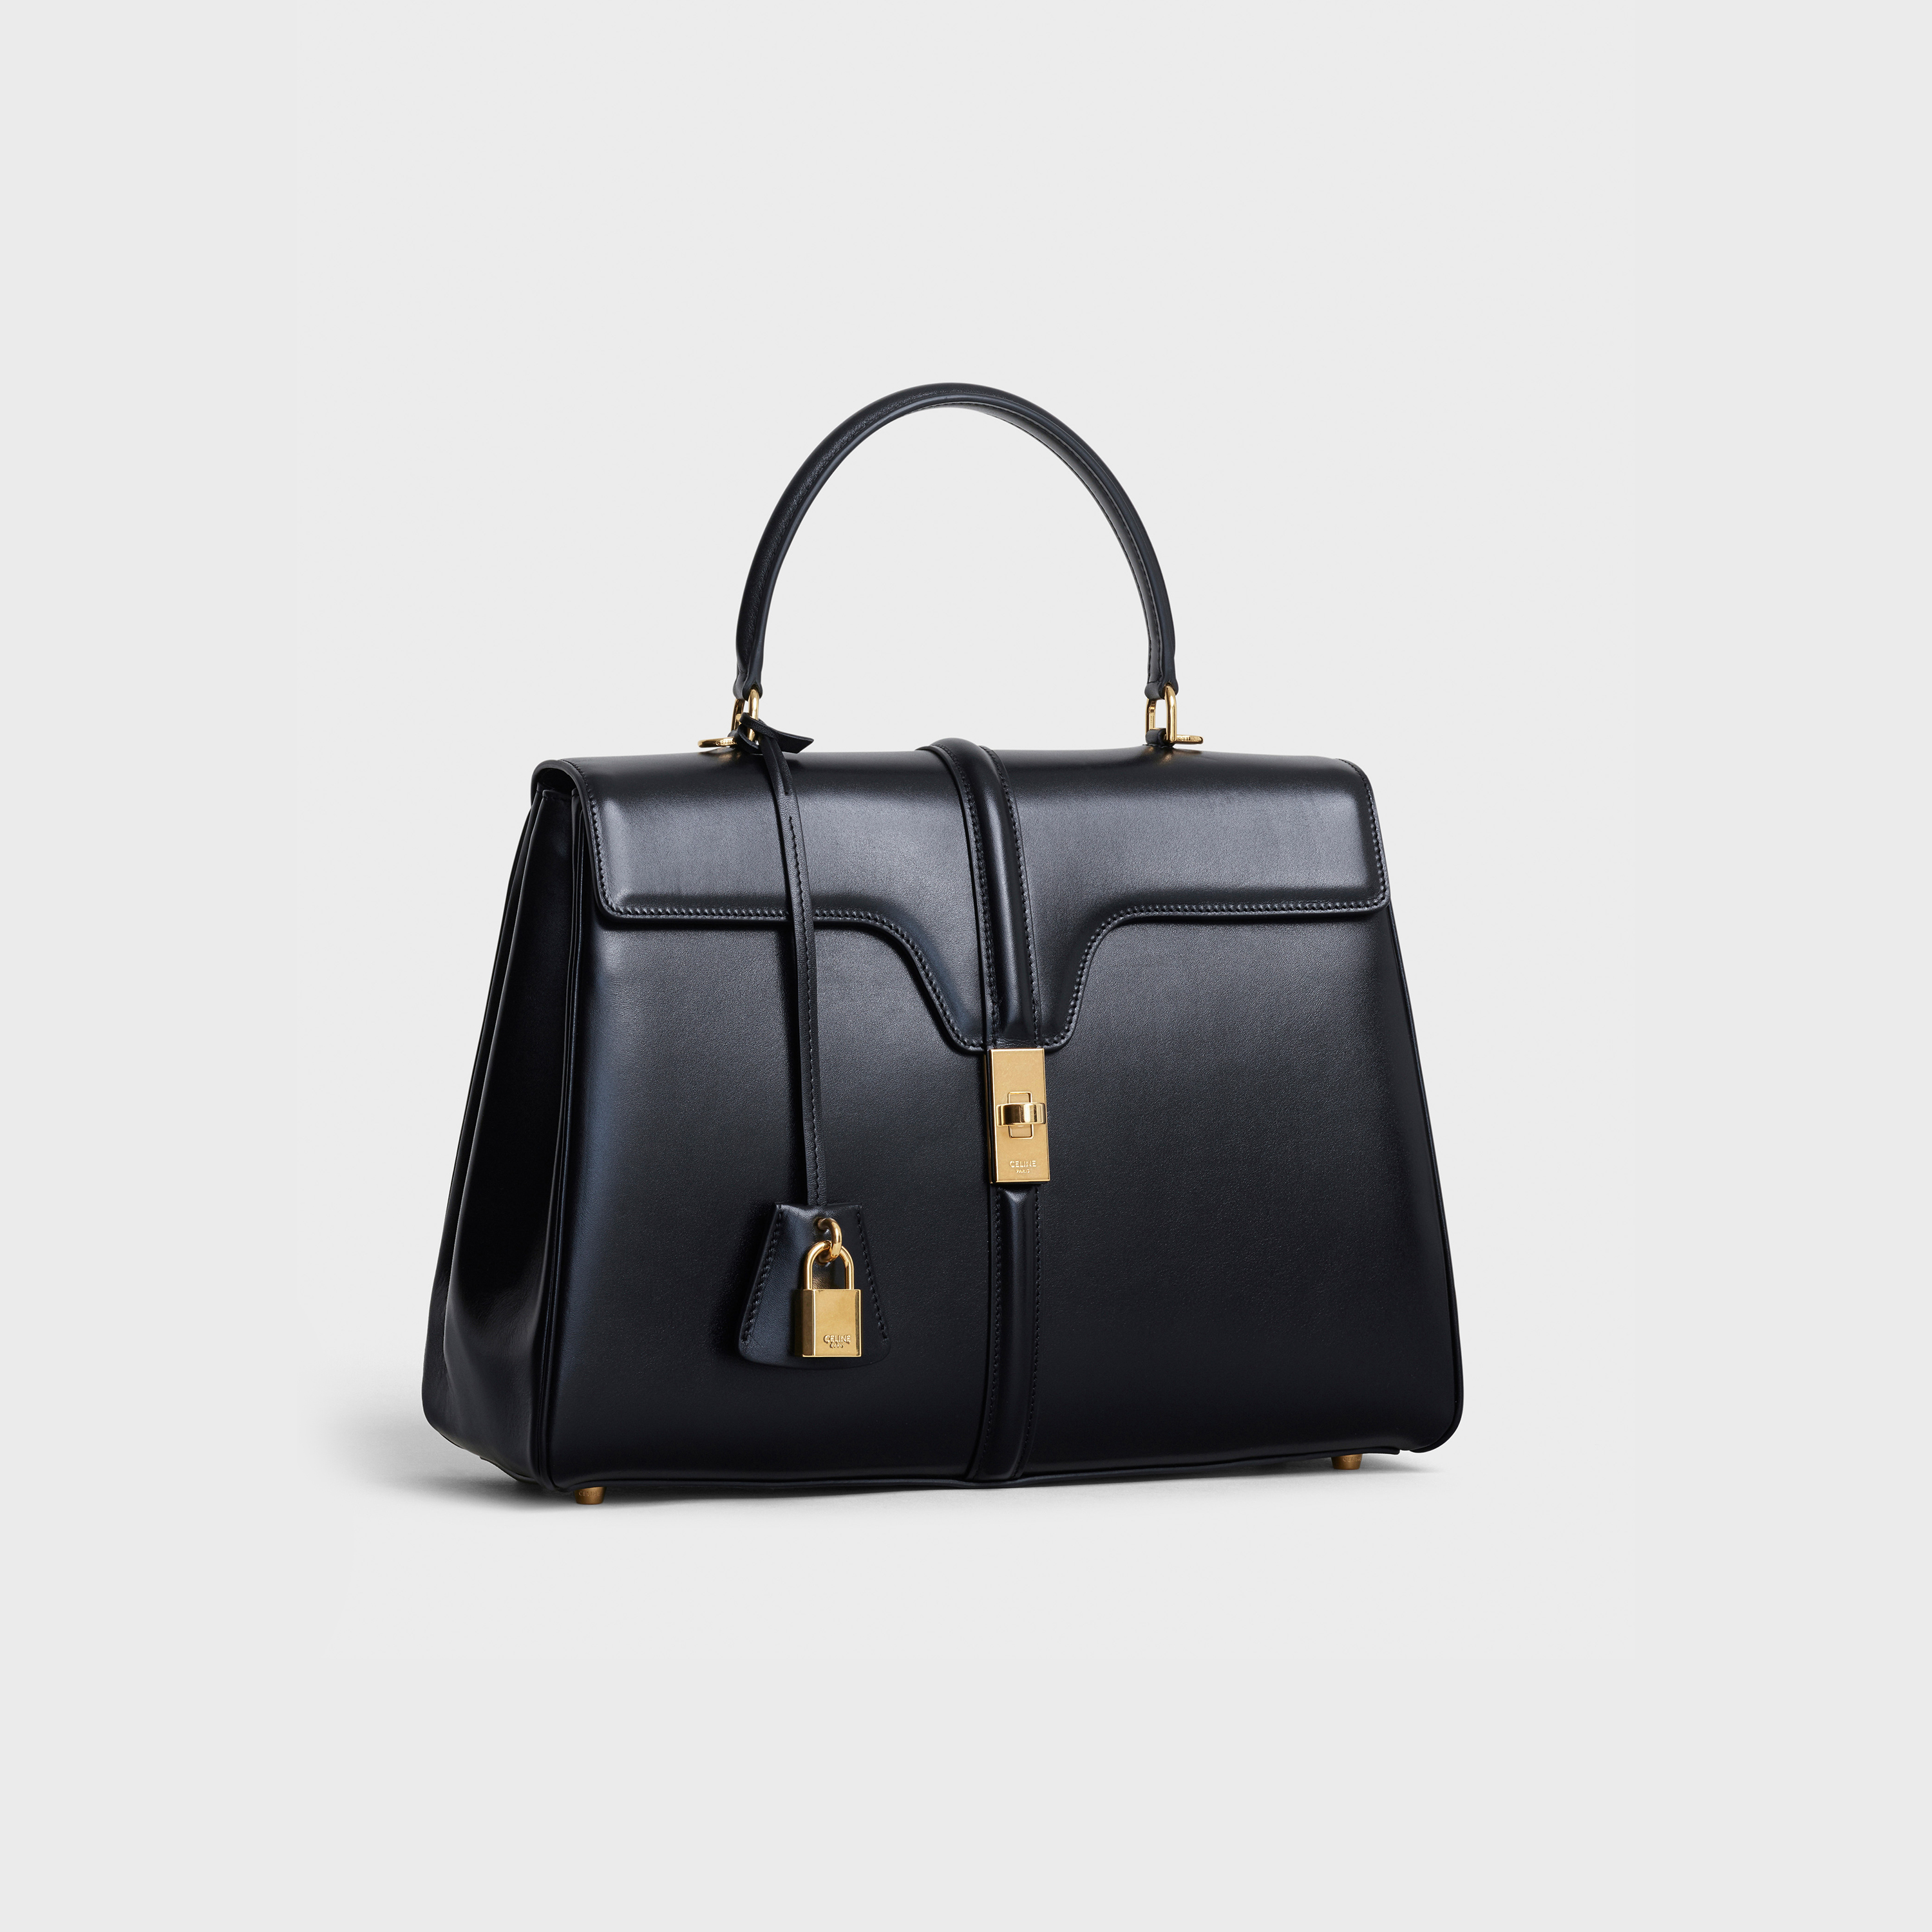 Medium 16 Bag in satinated calfskin | CELINE